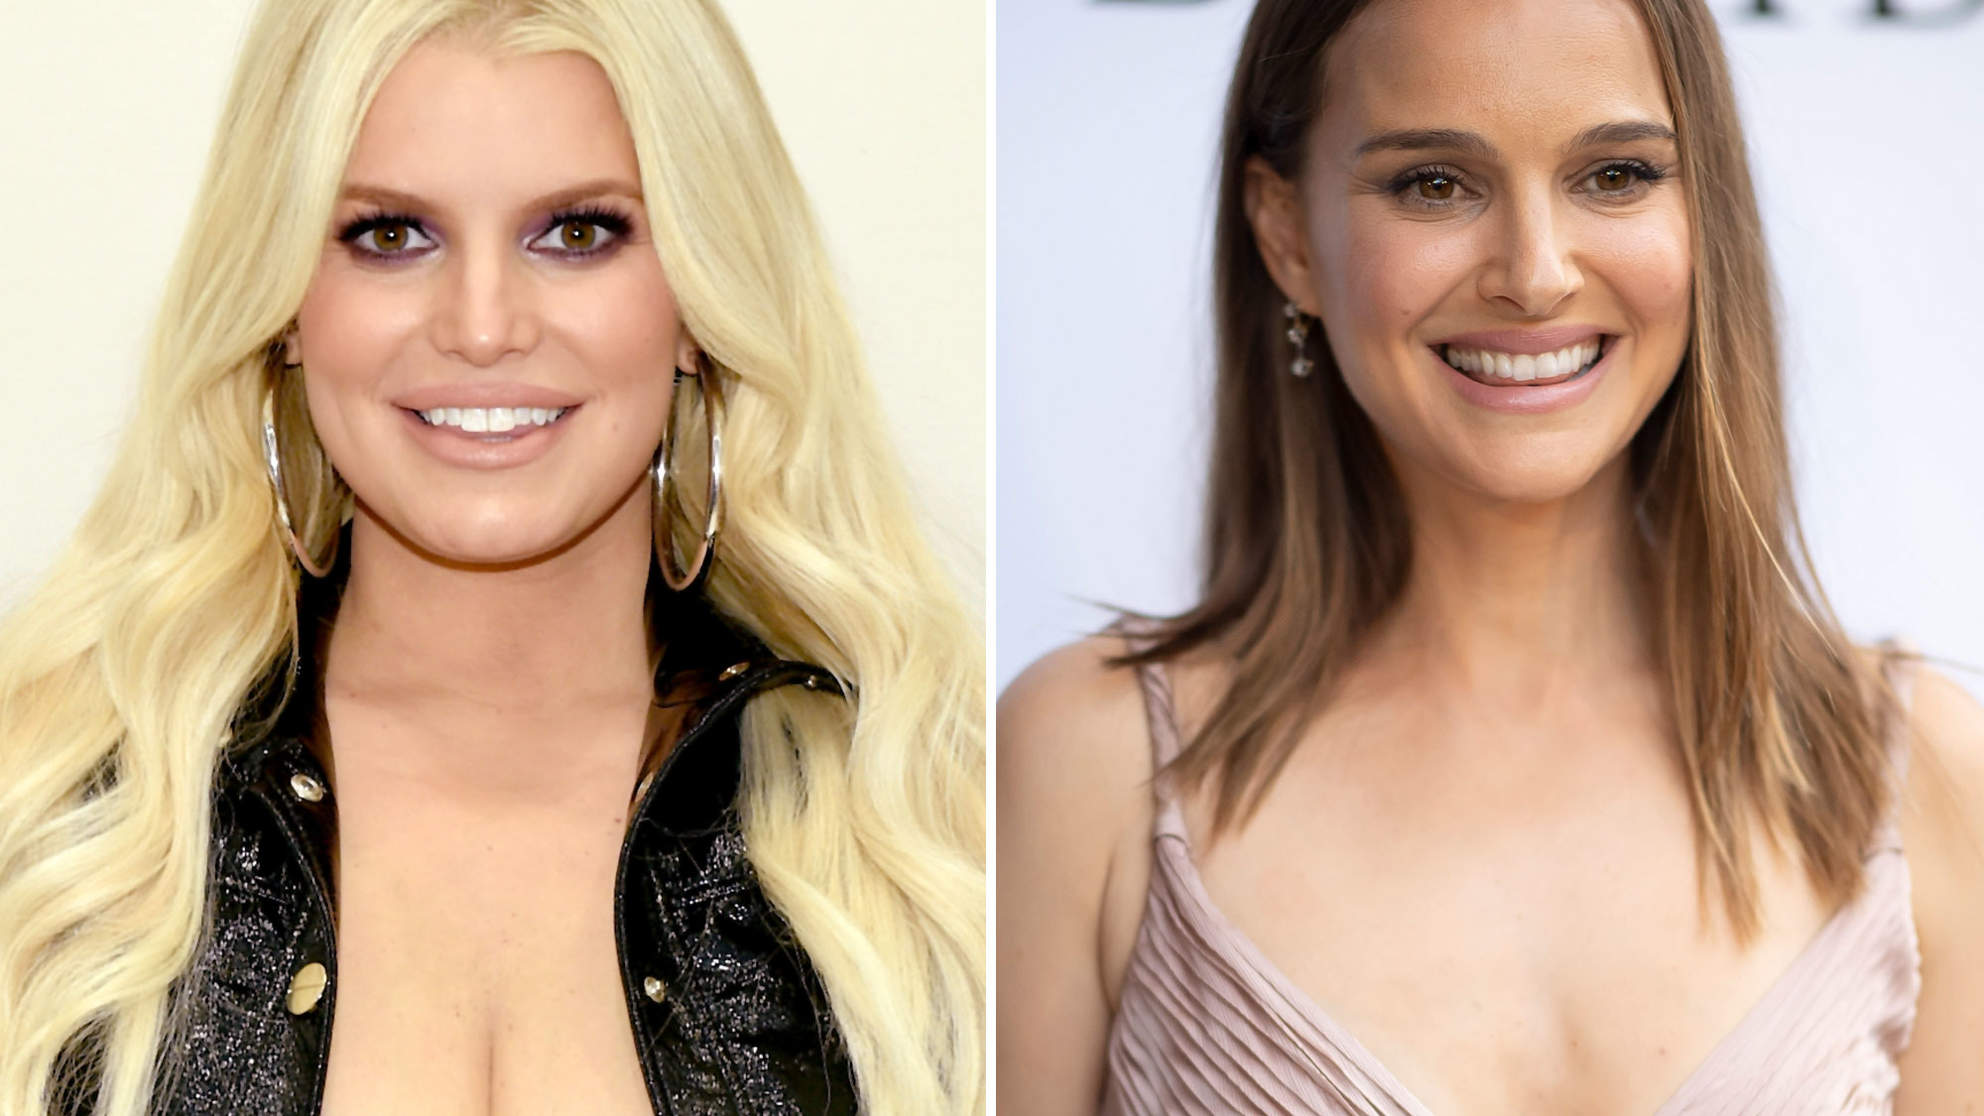 Jessica Simpson Claps Back After Natalie Portman Body Shames Her '90s Bikini Photos